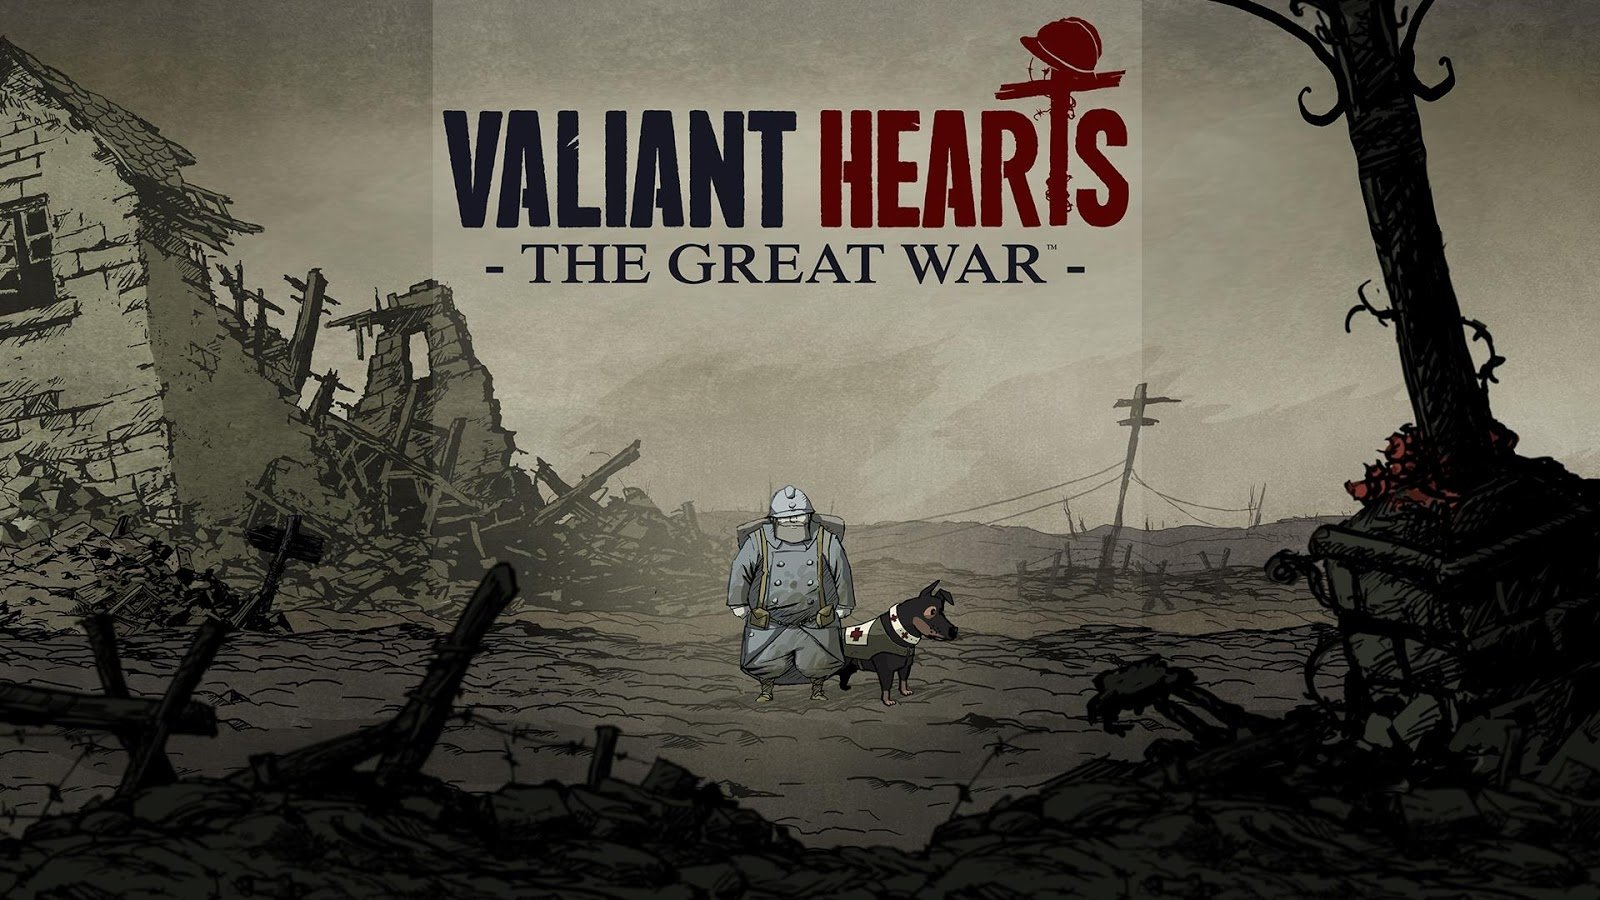 Valiant Hearts: The Great War Android image 5